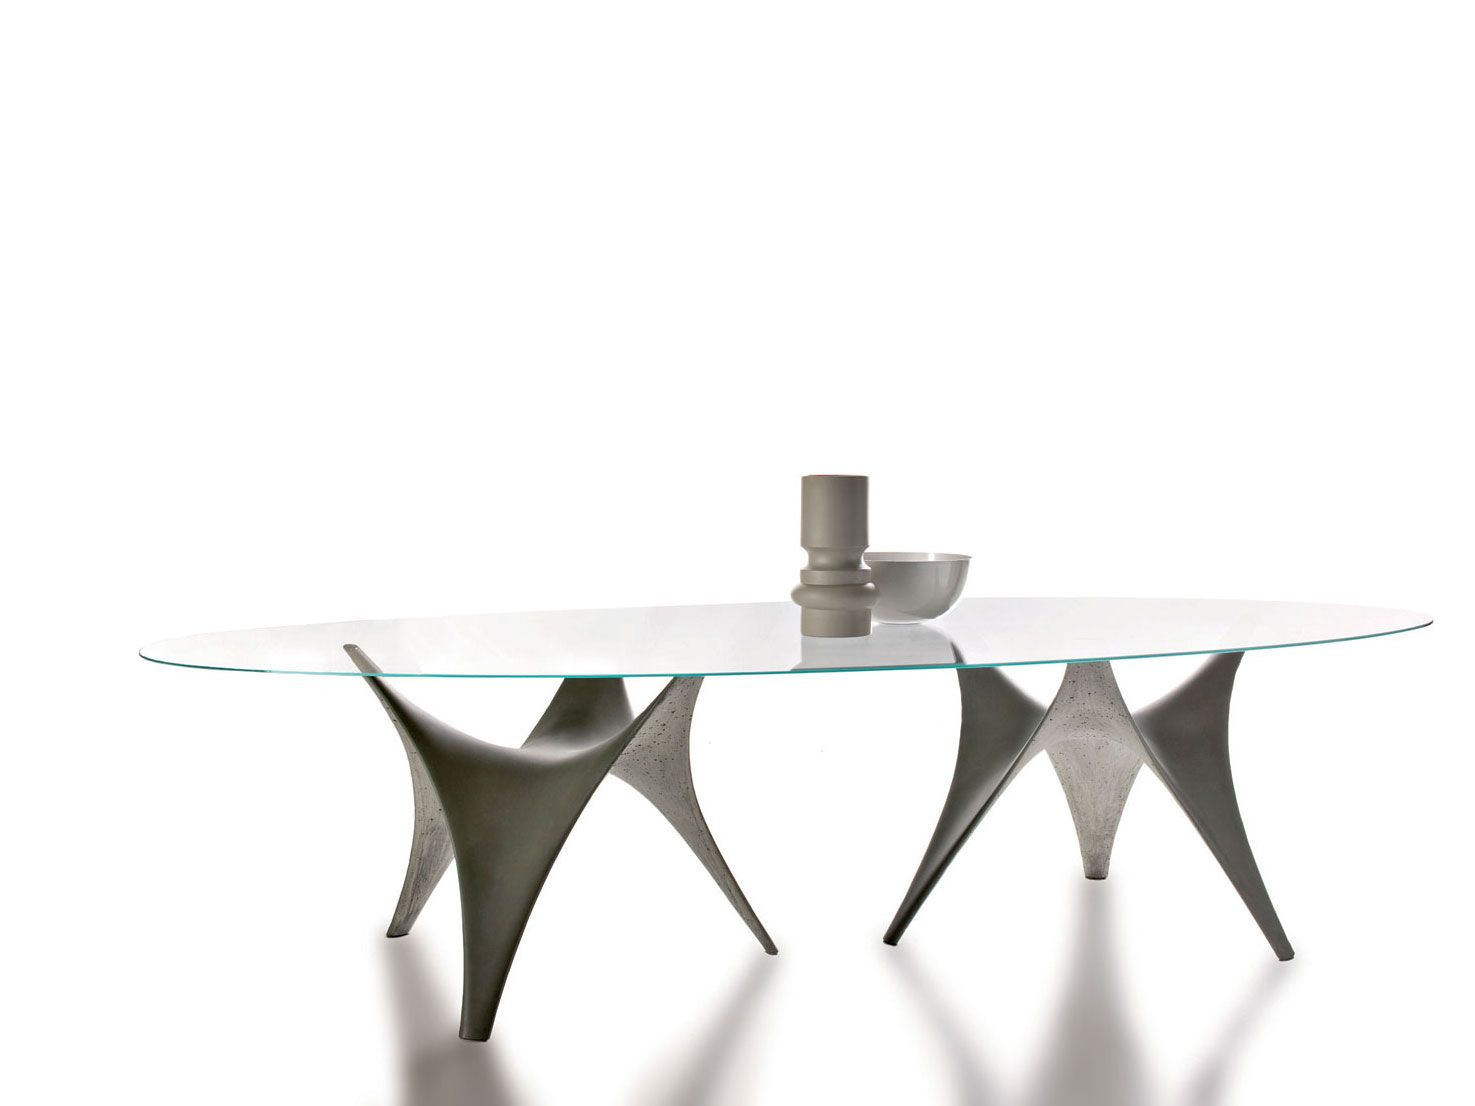 ARC | Oval table By Molteni&C design Foster + Partners | Pinterest ...